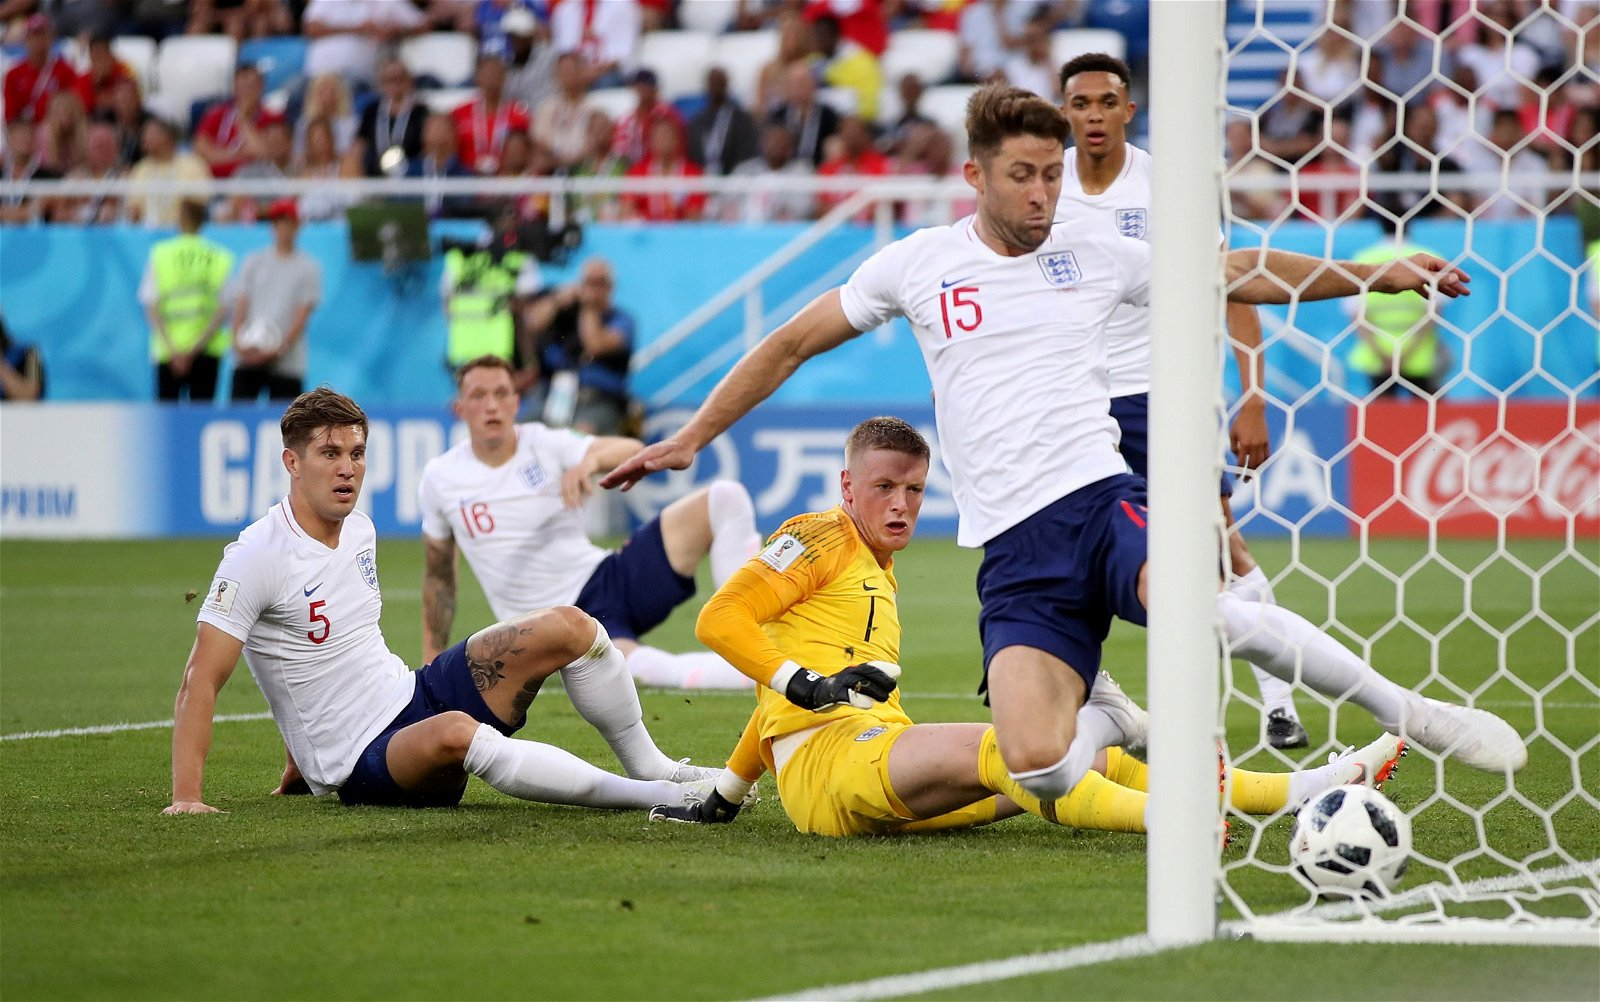 Gary Cahill clears the ball off the goal line against Belgium for England at 2018 Russia World Cup